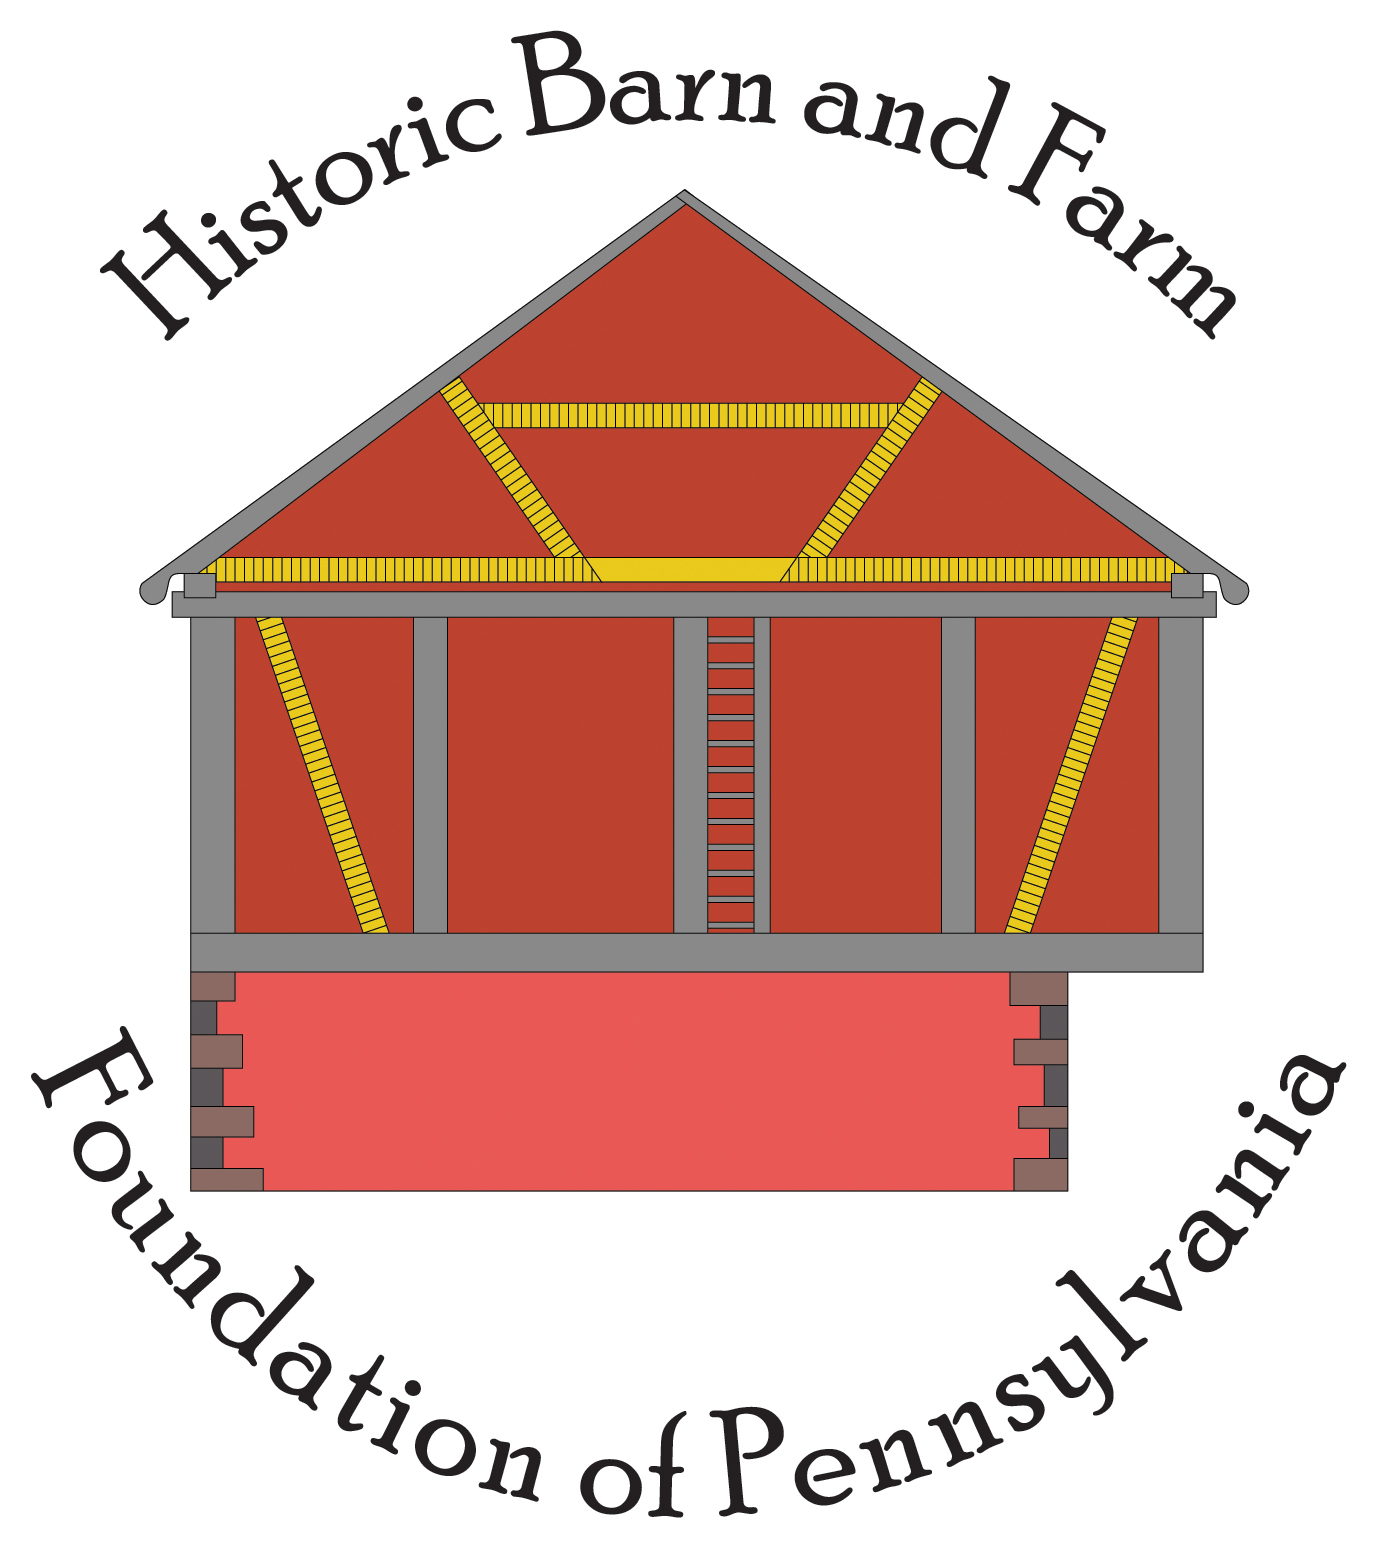 The Historic Barn and Farm Foundation logo, which features a barn vector